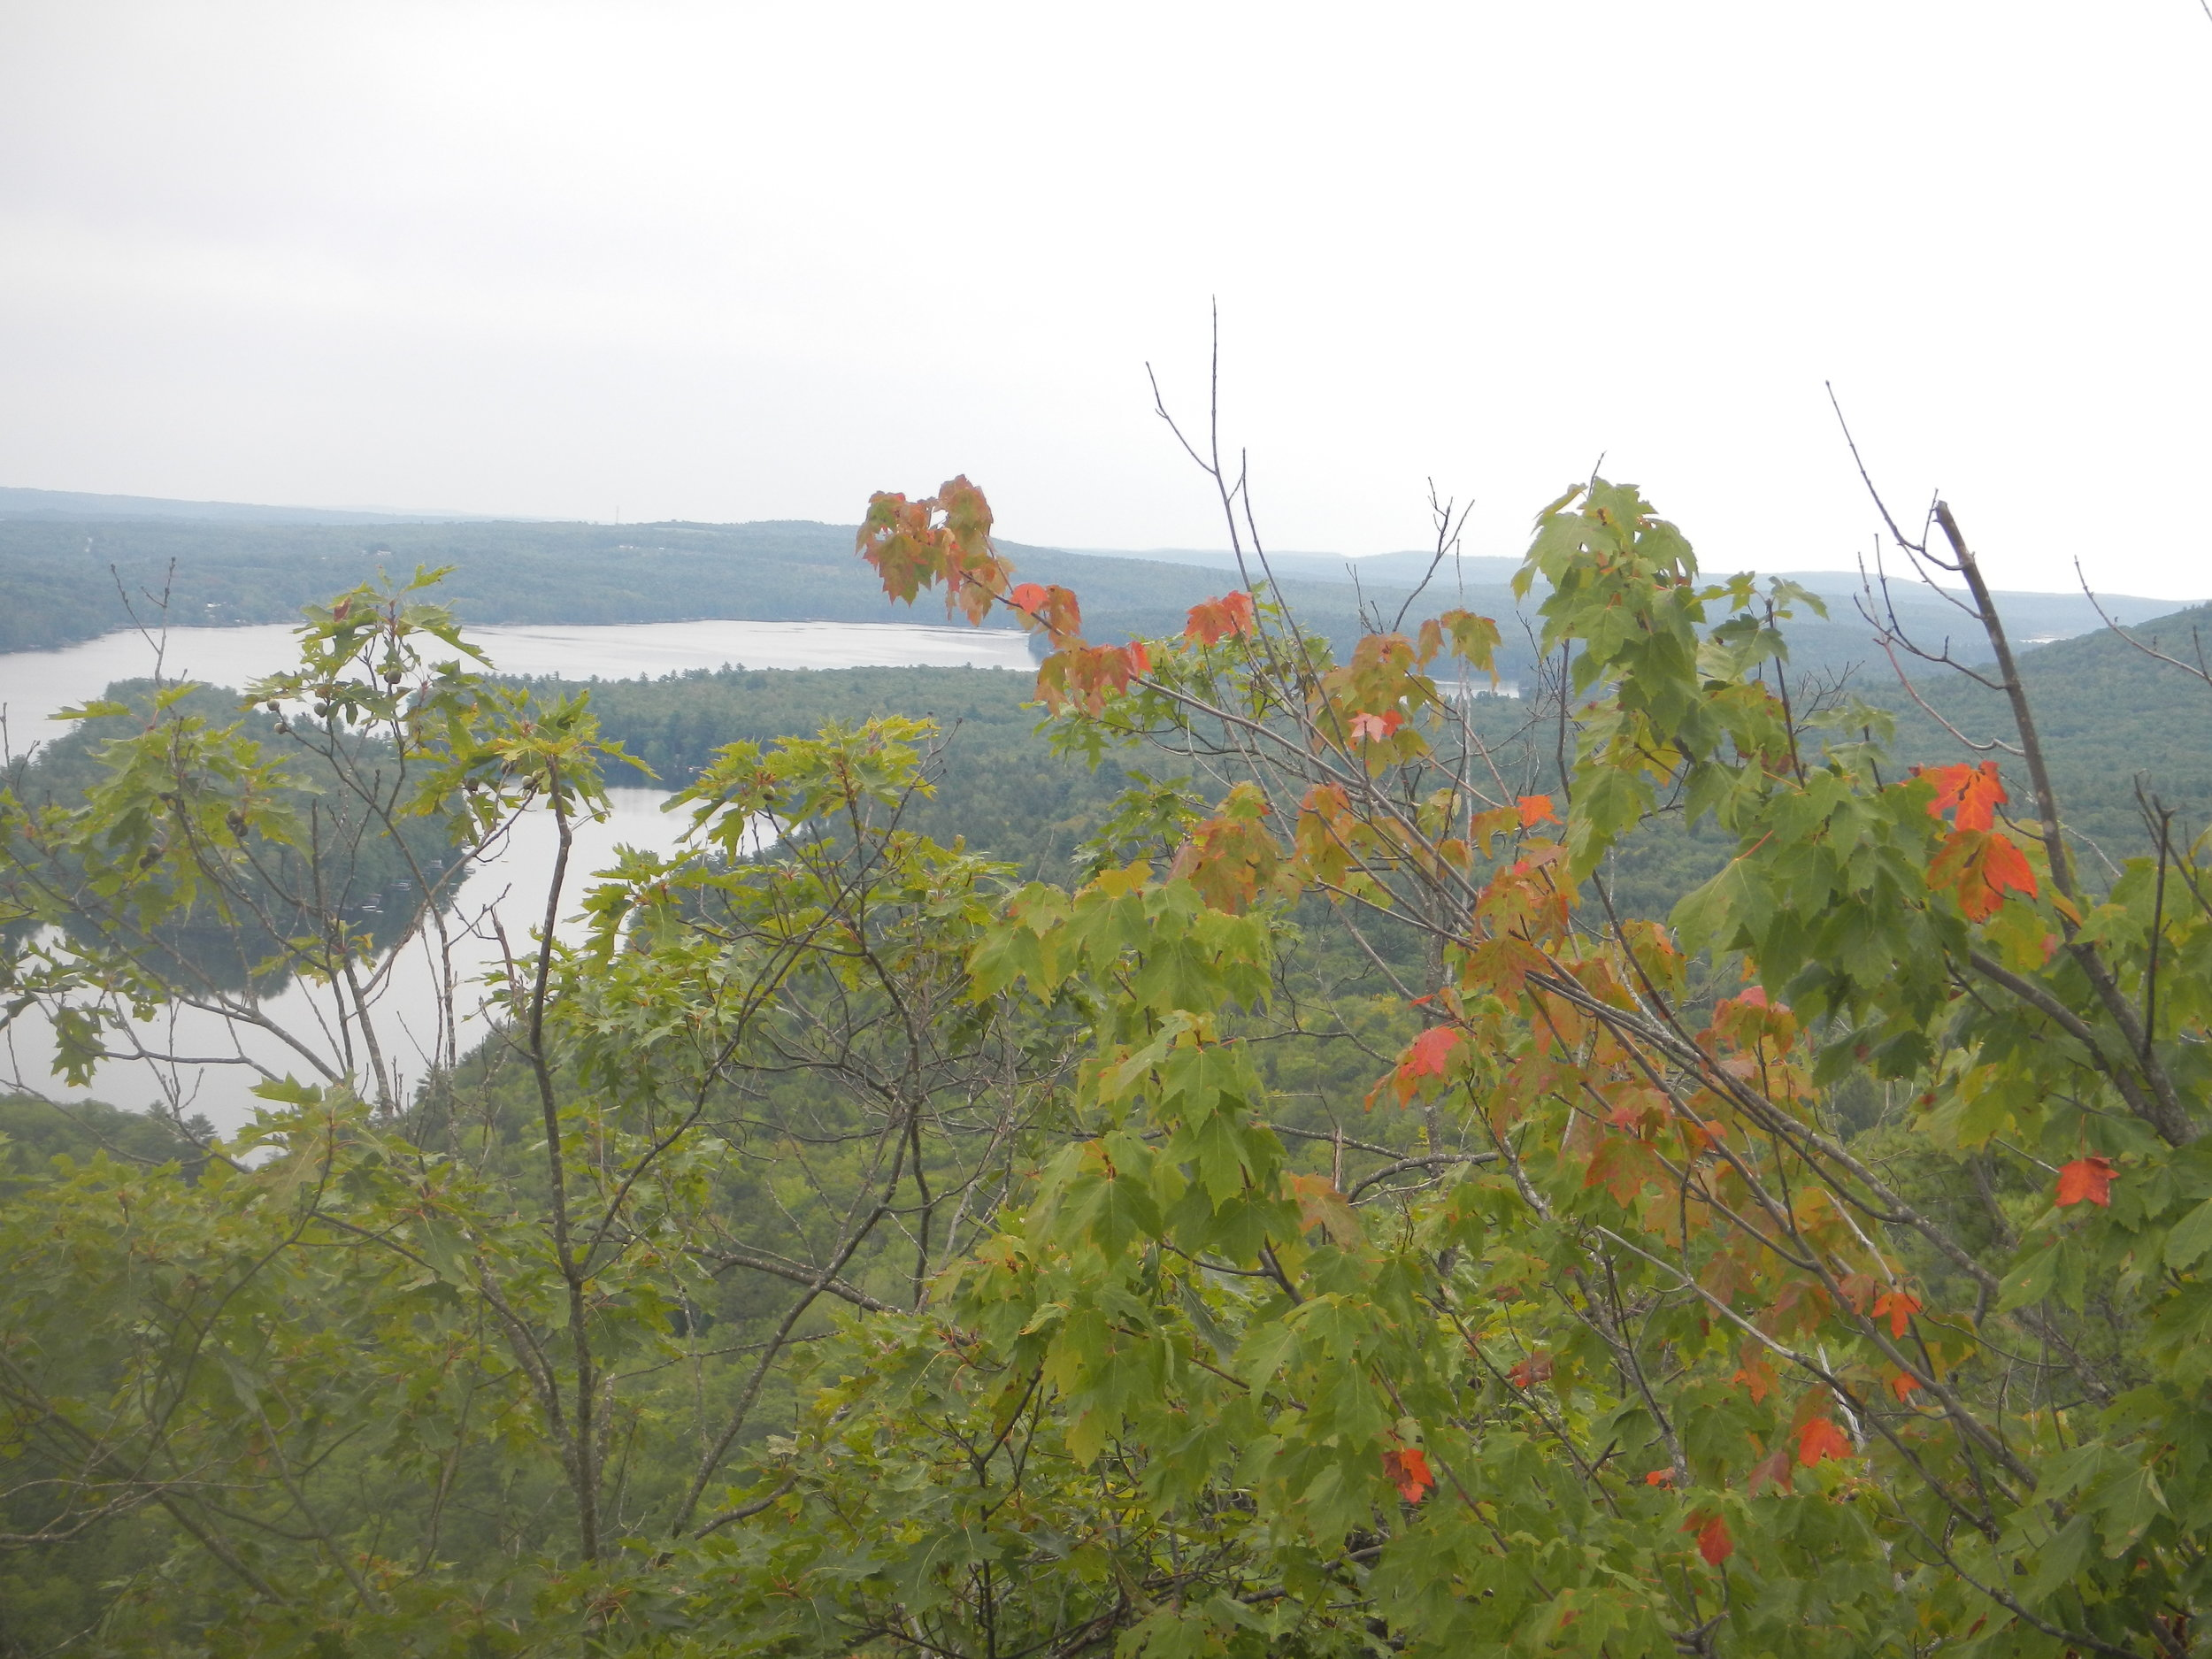 View of Watson Pond from Sanders Loop trail in the Kennebec Highlands, Maine. A small, pleasant hike up and back down, with a sweet payoff view. In early July there are blueberries. Now a few leaves are just beginning to change from summer green to autumn red.